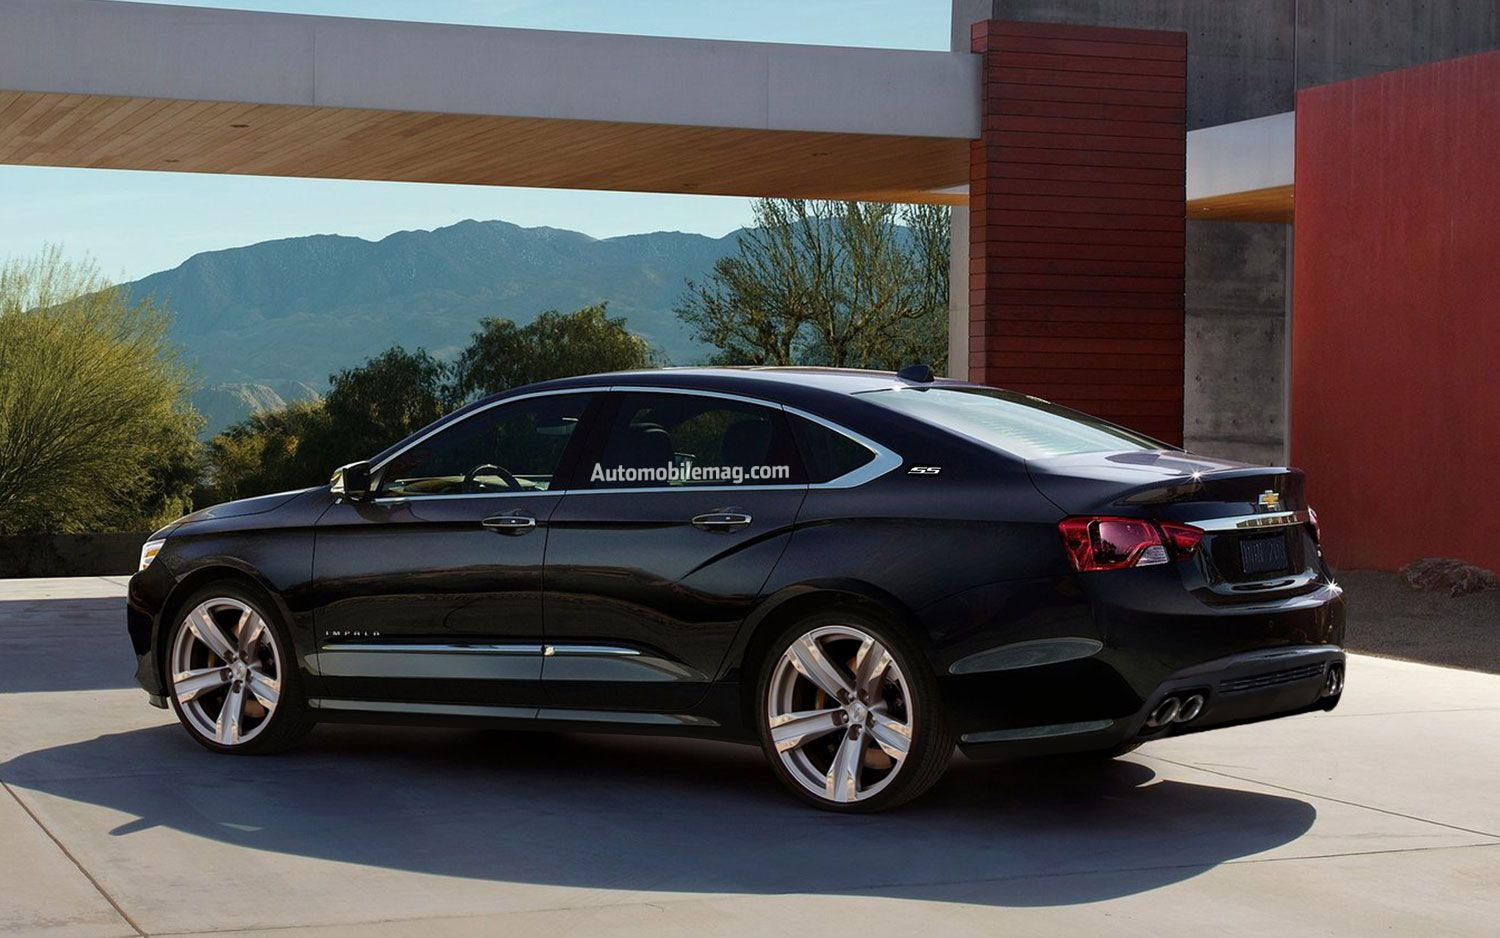 chevy impala ss rendering rear amag photo on april 23 2012 [ 1500 x 938 Pixel ]